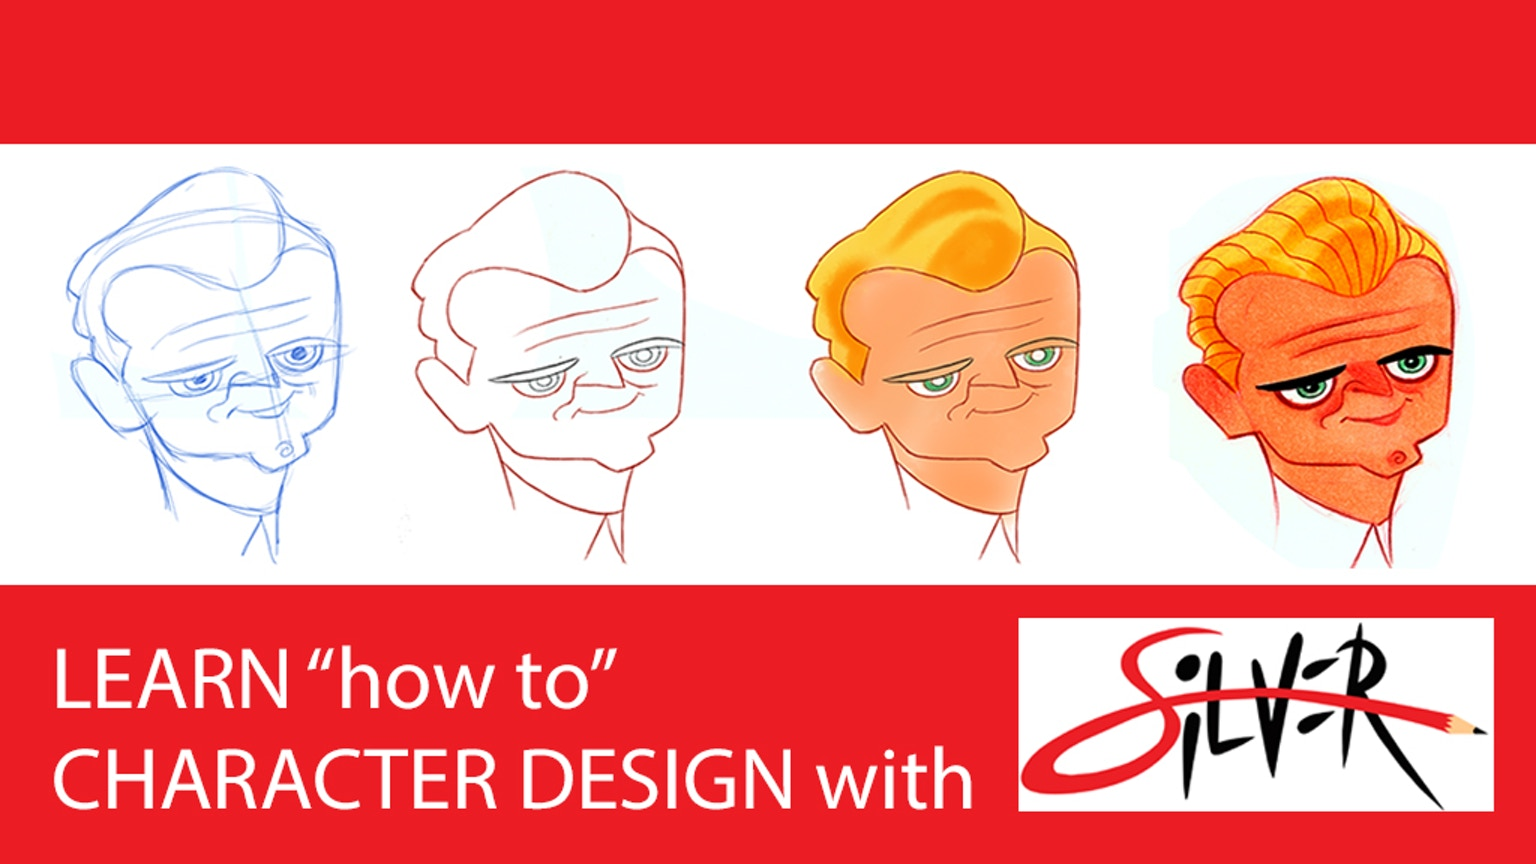 Stephen Silver Character Design Course : Character design with silver a drawing guide book by